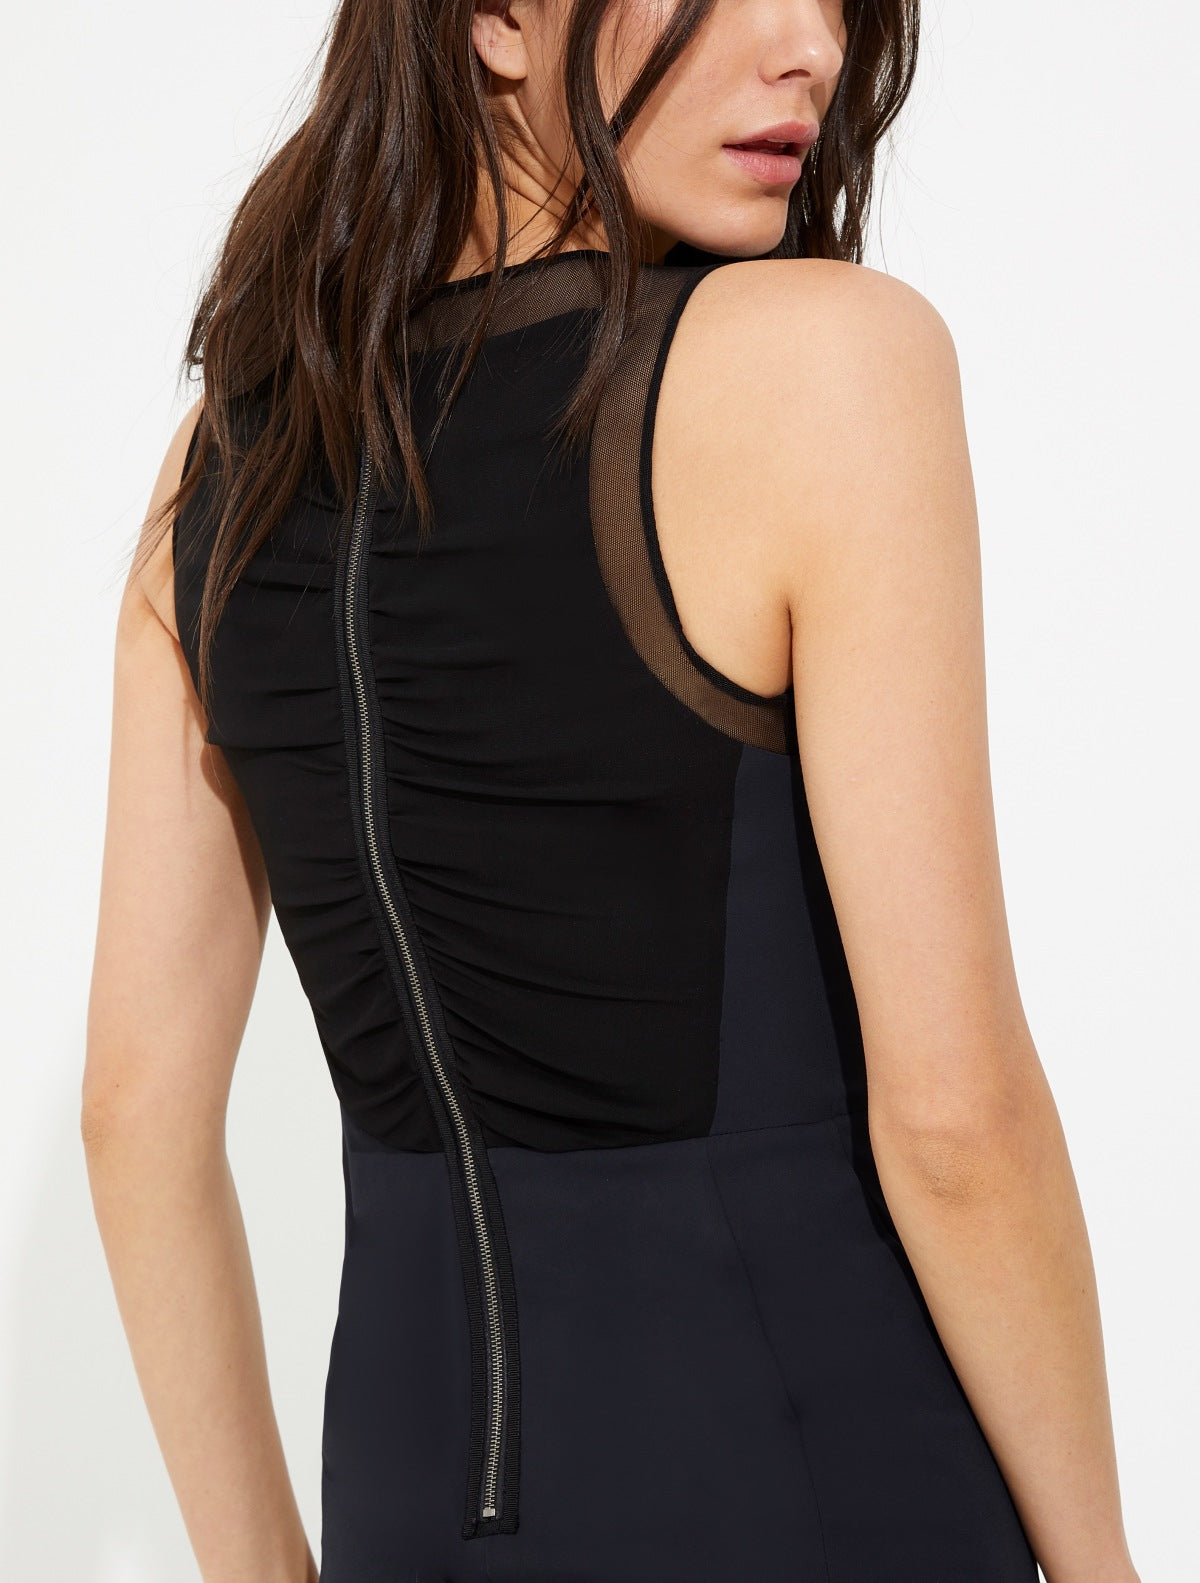 Ruched back zipper detail flowy dress - Halston